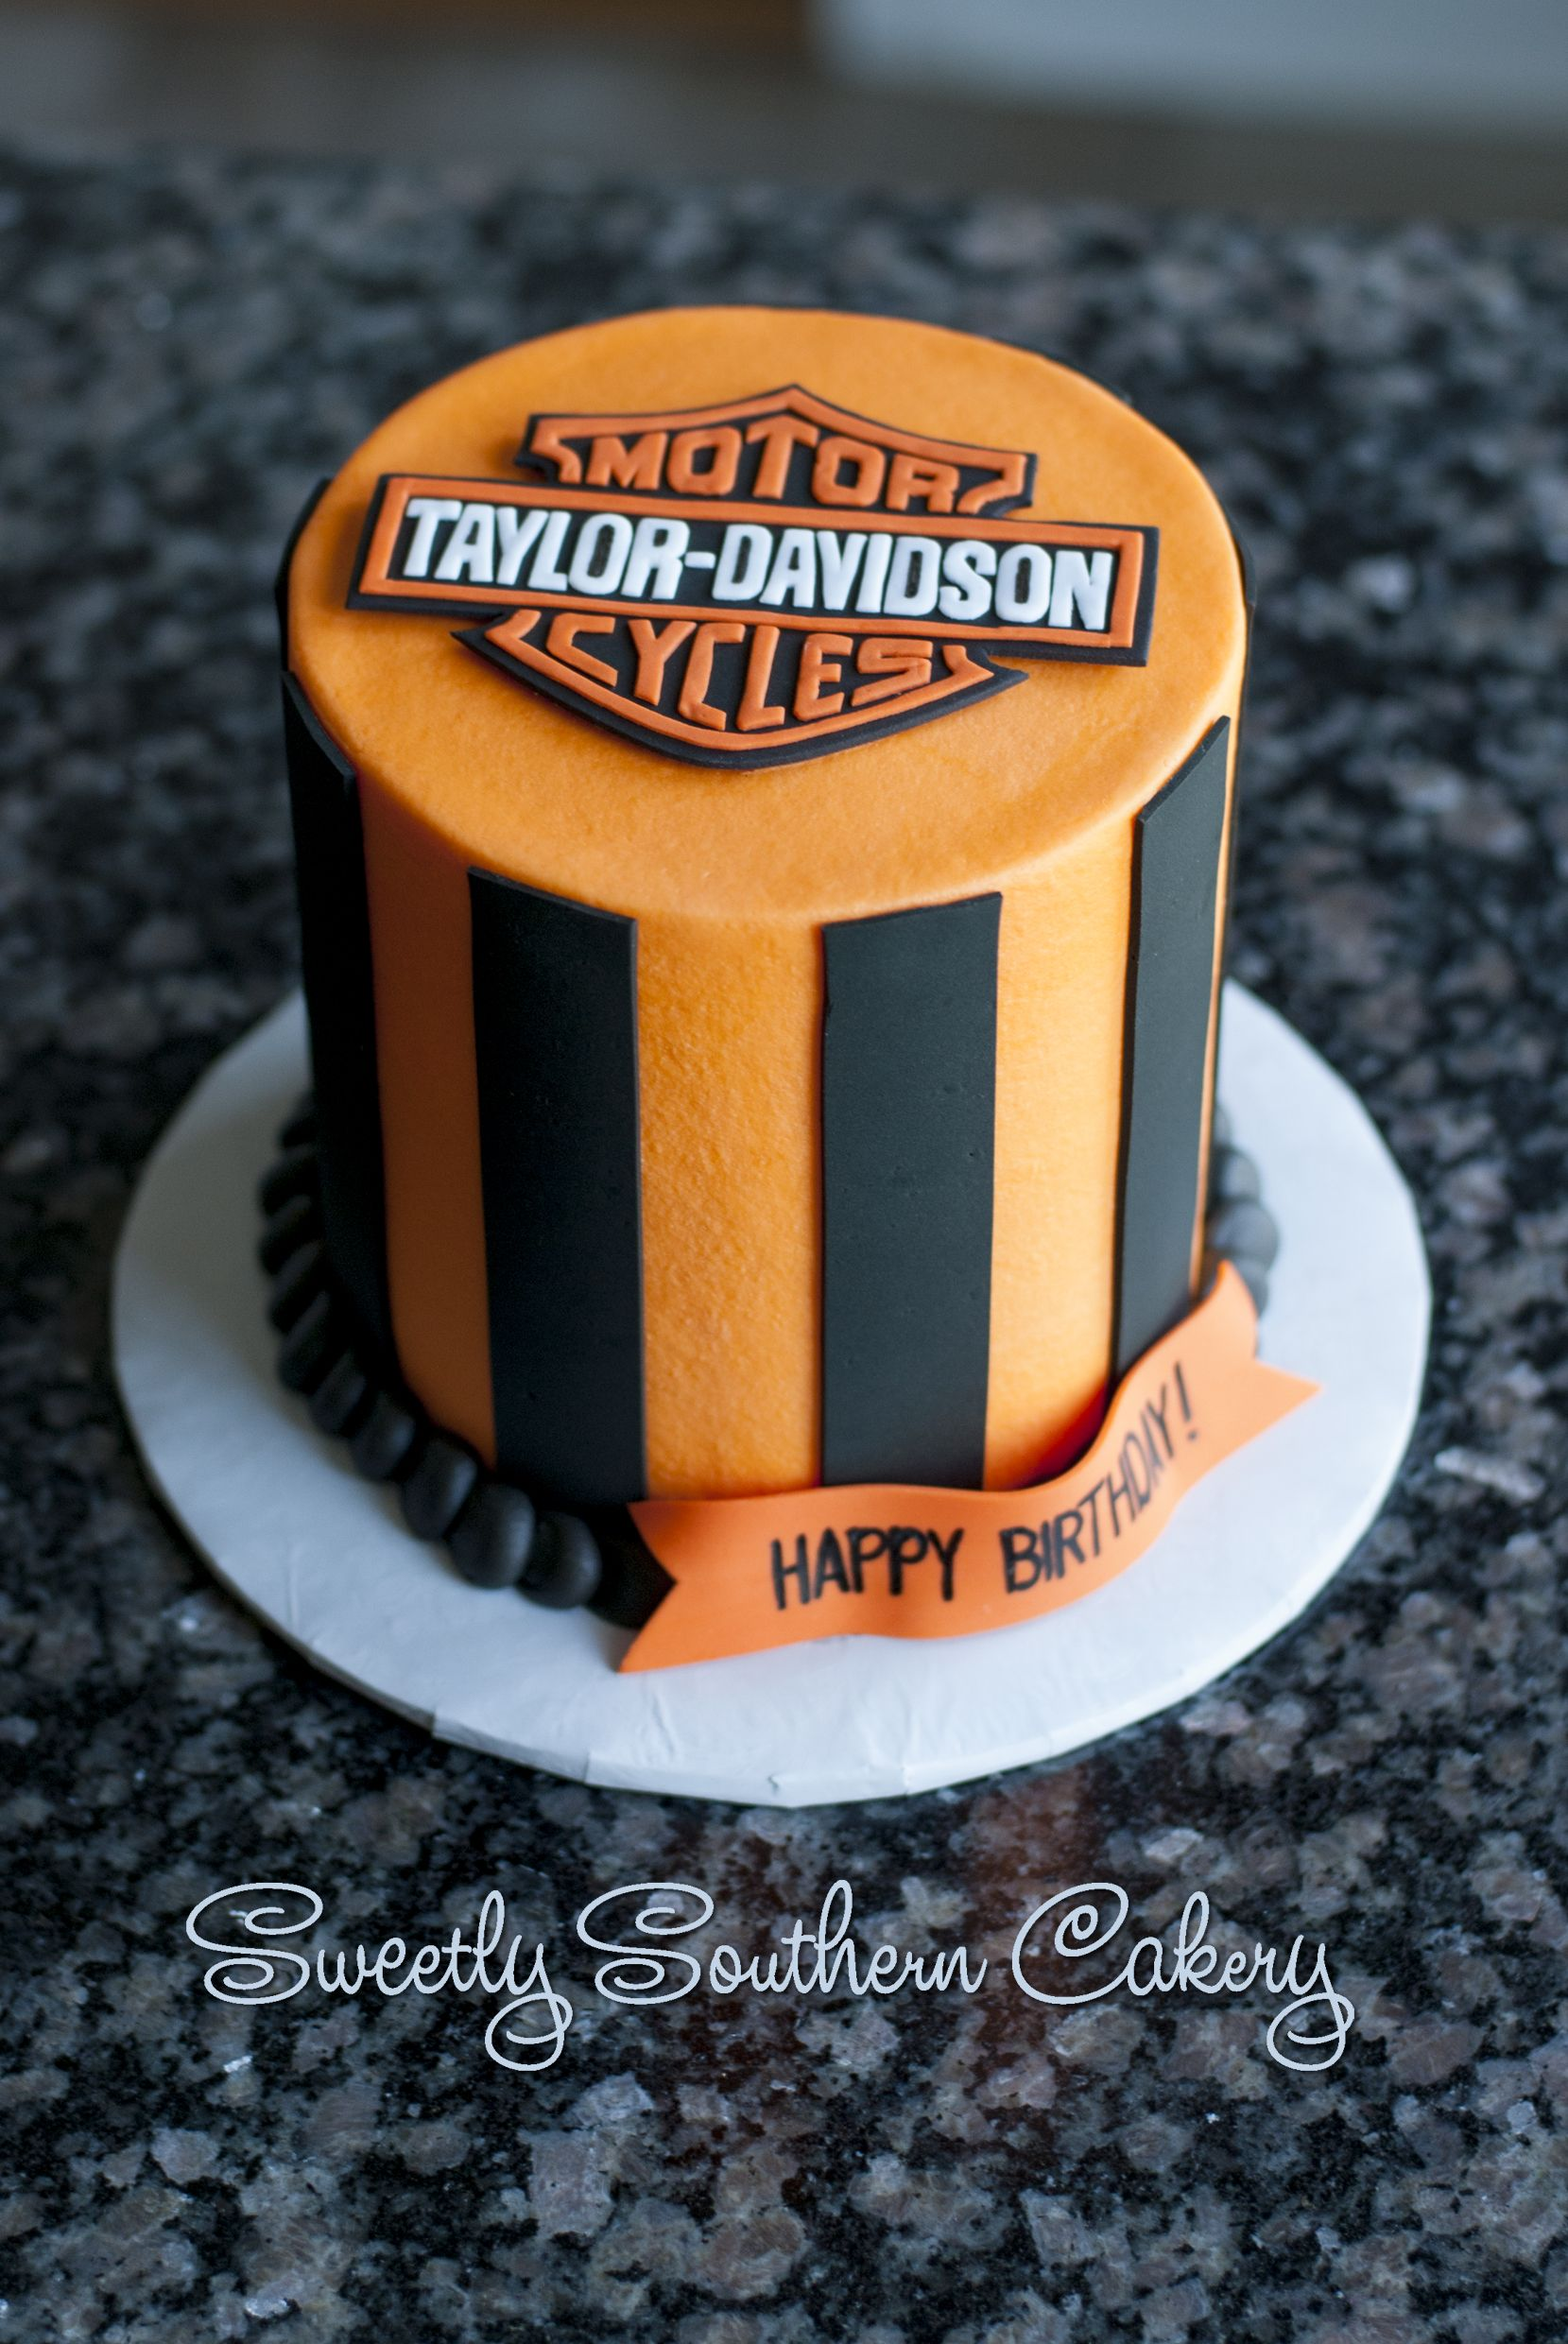 Harley Davidson Cake With Images Motorcycle Cake Harley